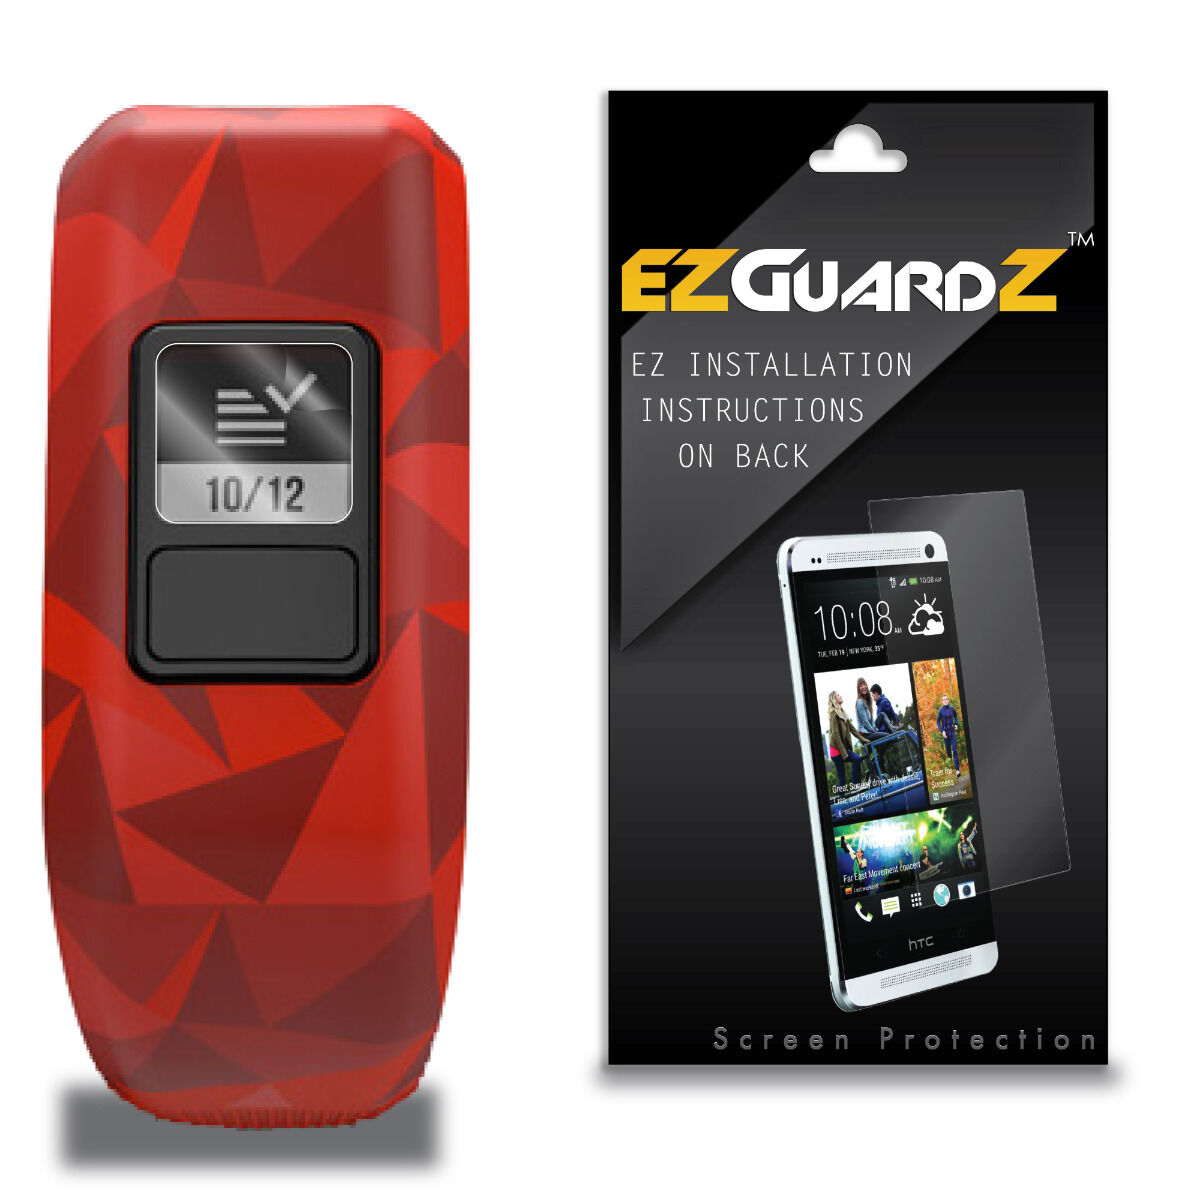 3x Ezguardz Screen Protector Shield Hd 3x For Garmin Vivofit Jr Ebay